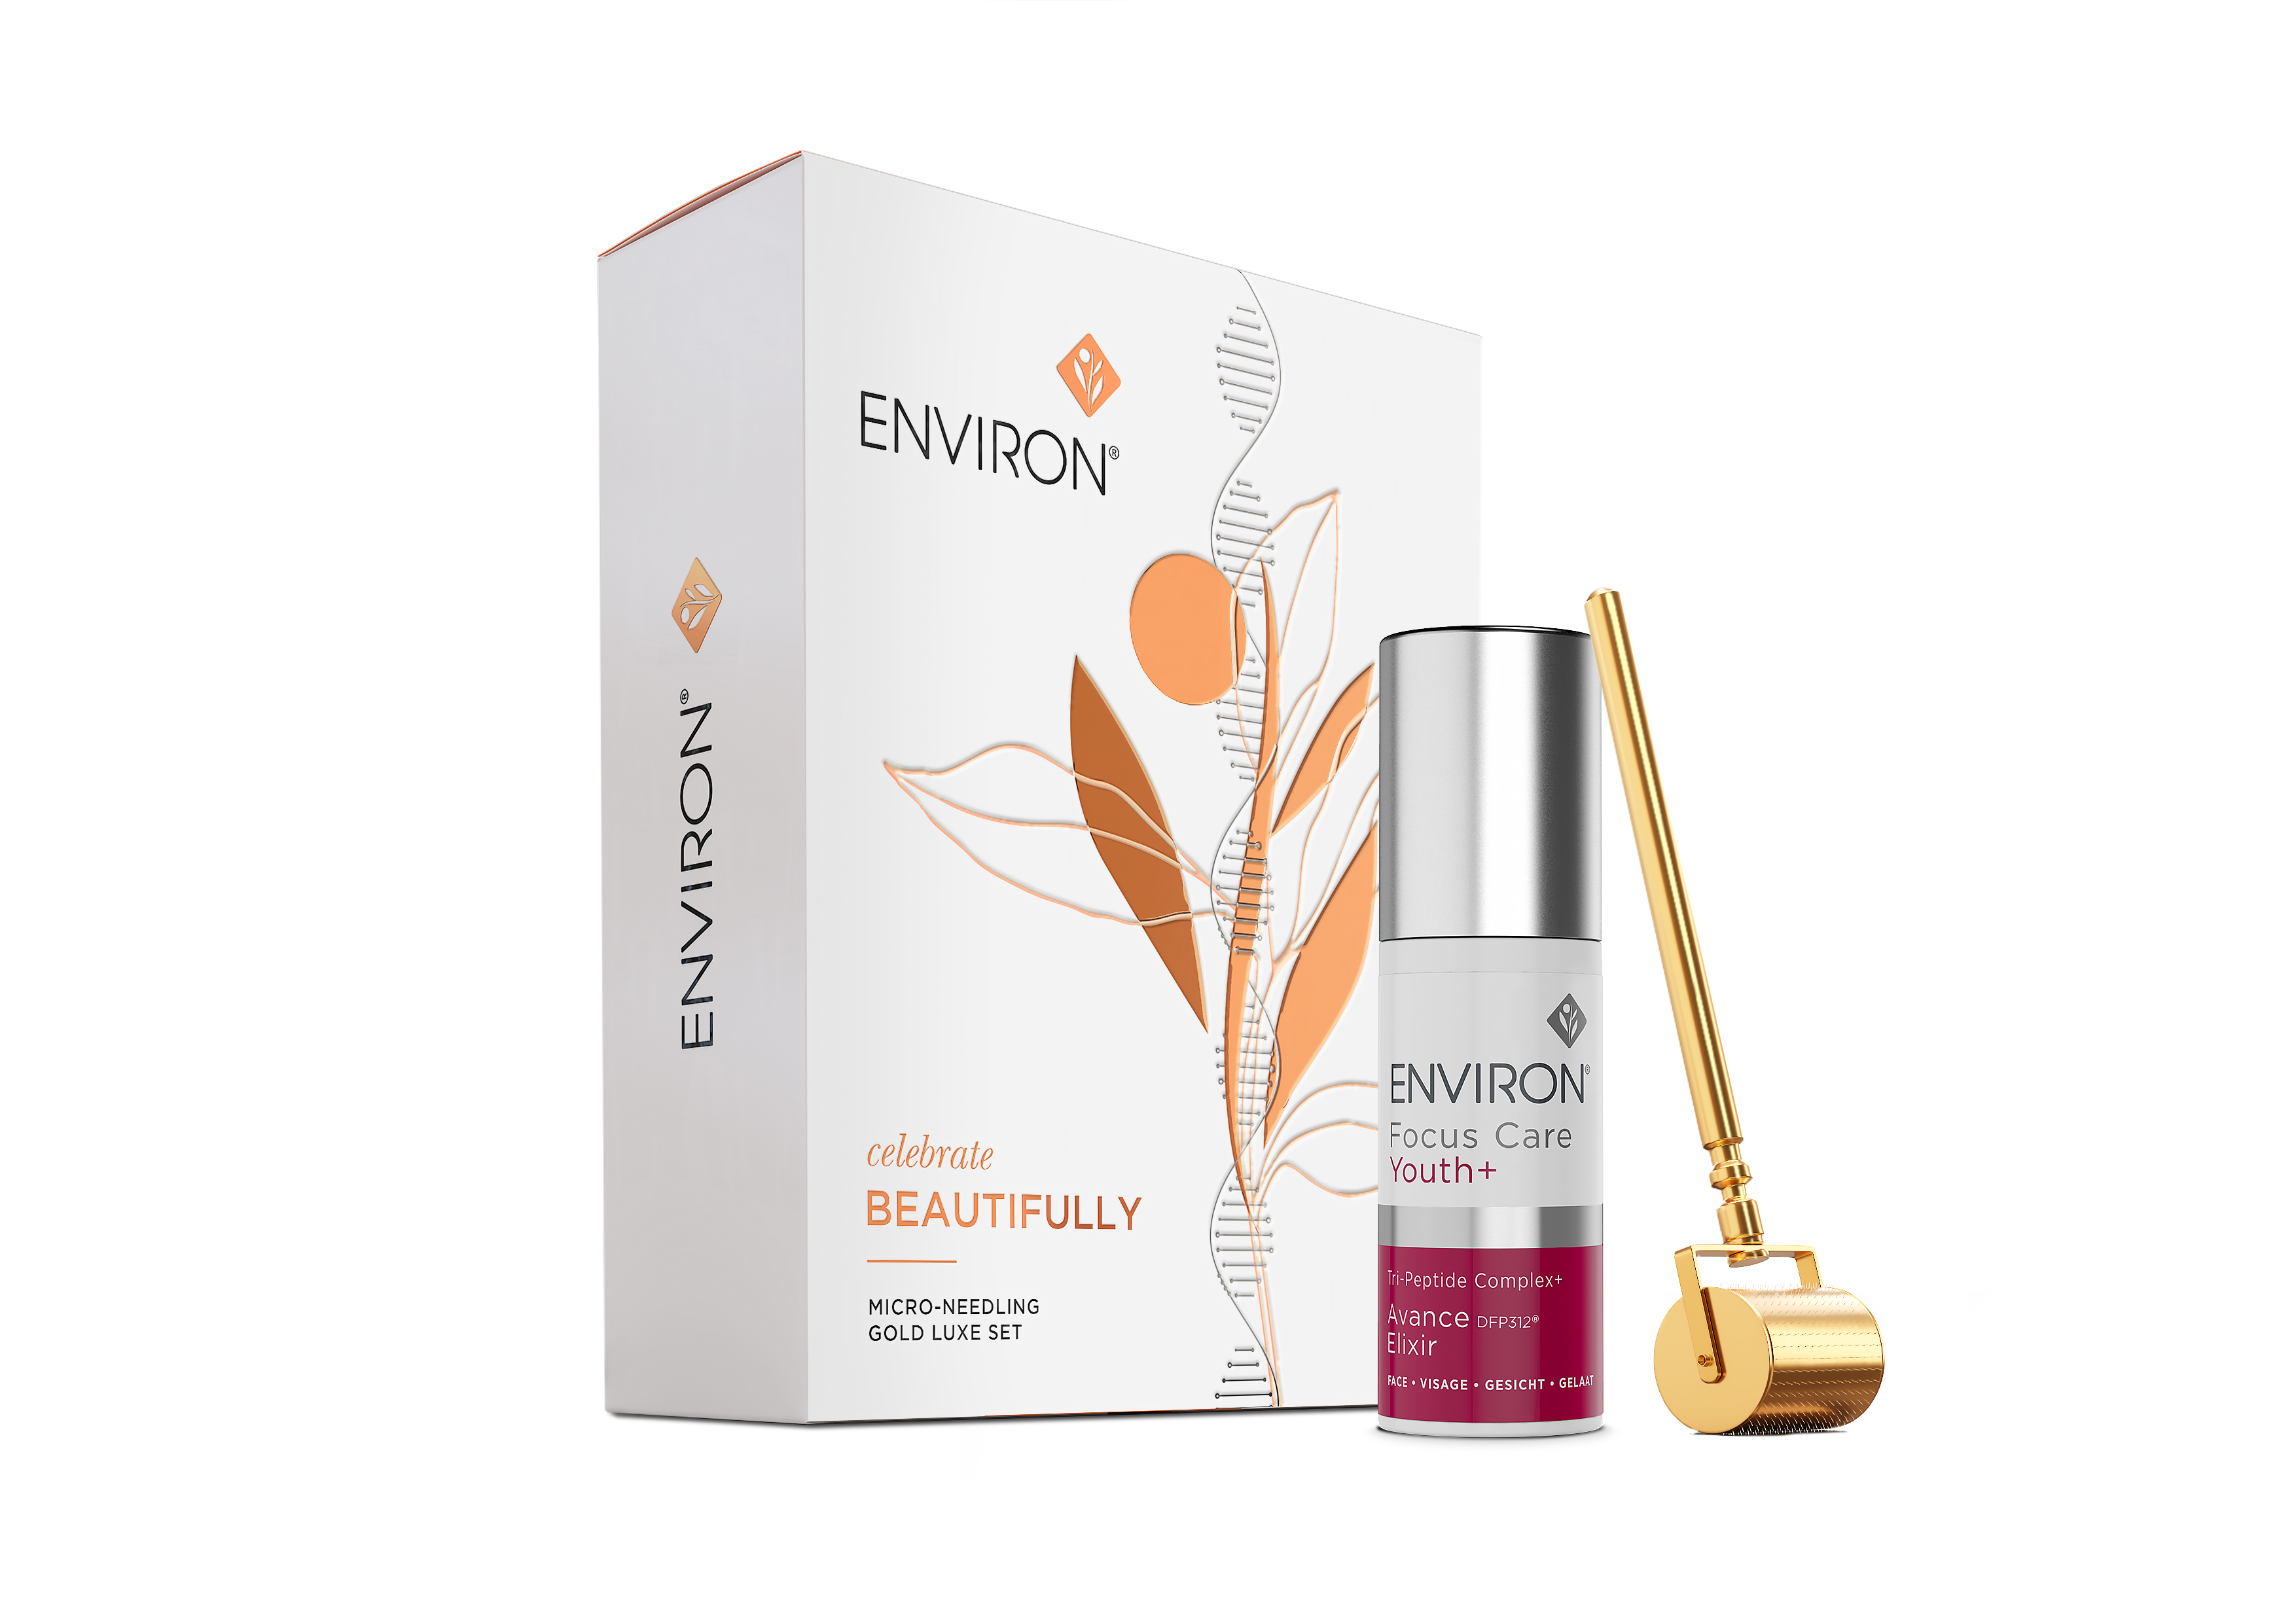 janet notes nyc, environ gold roller gift set